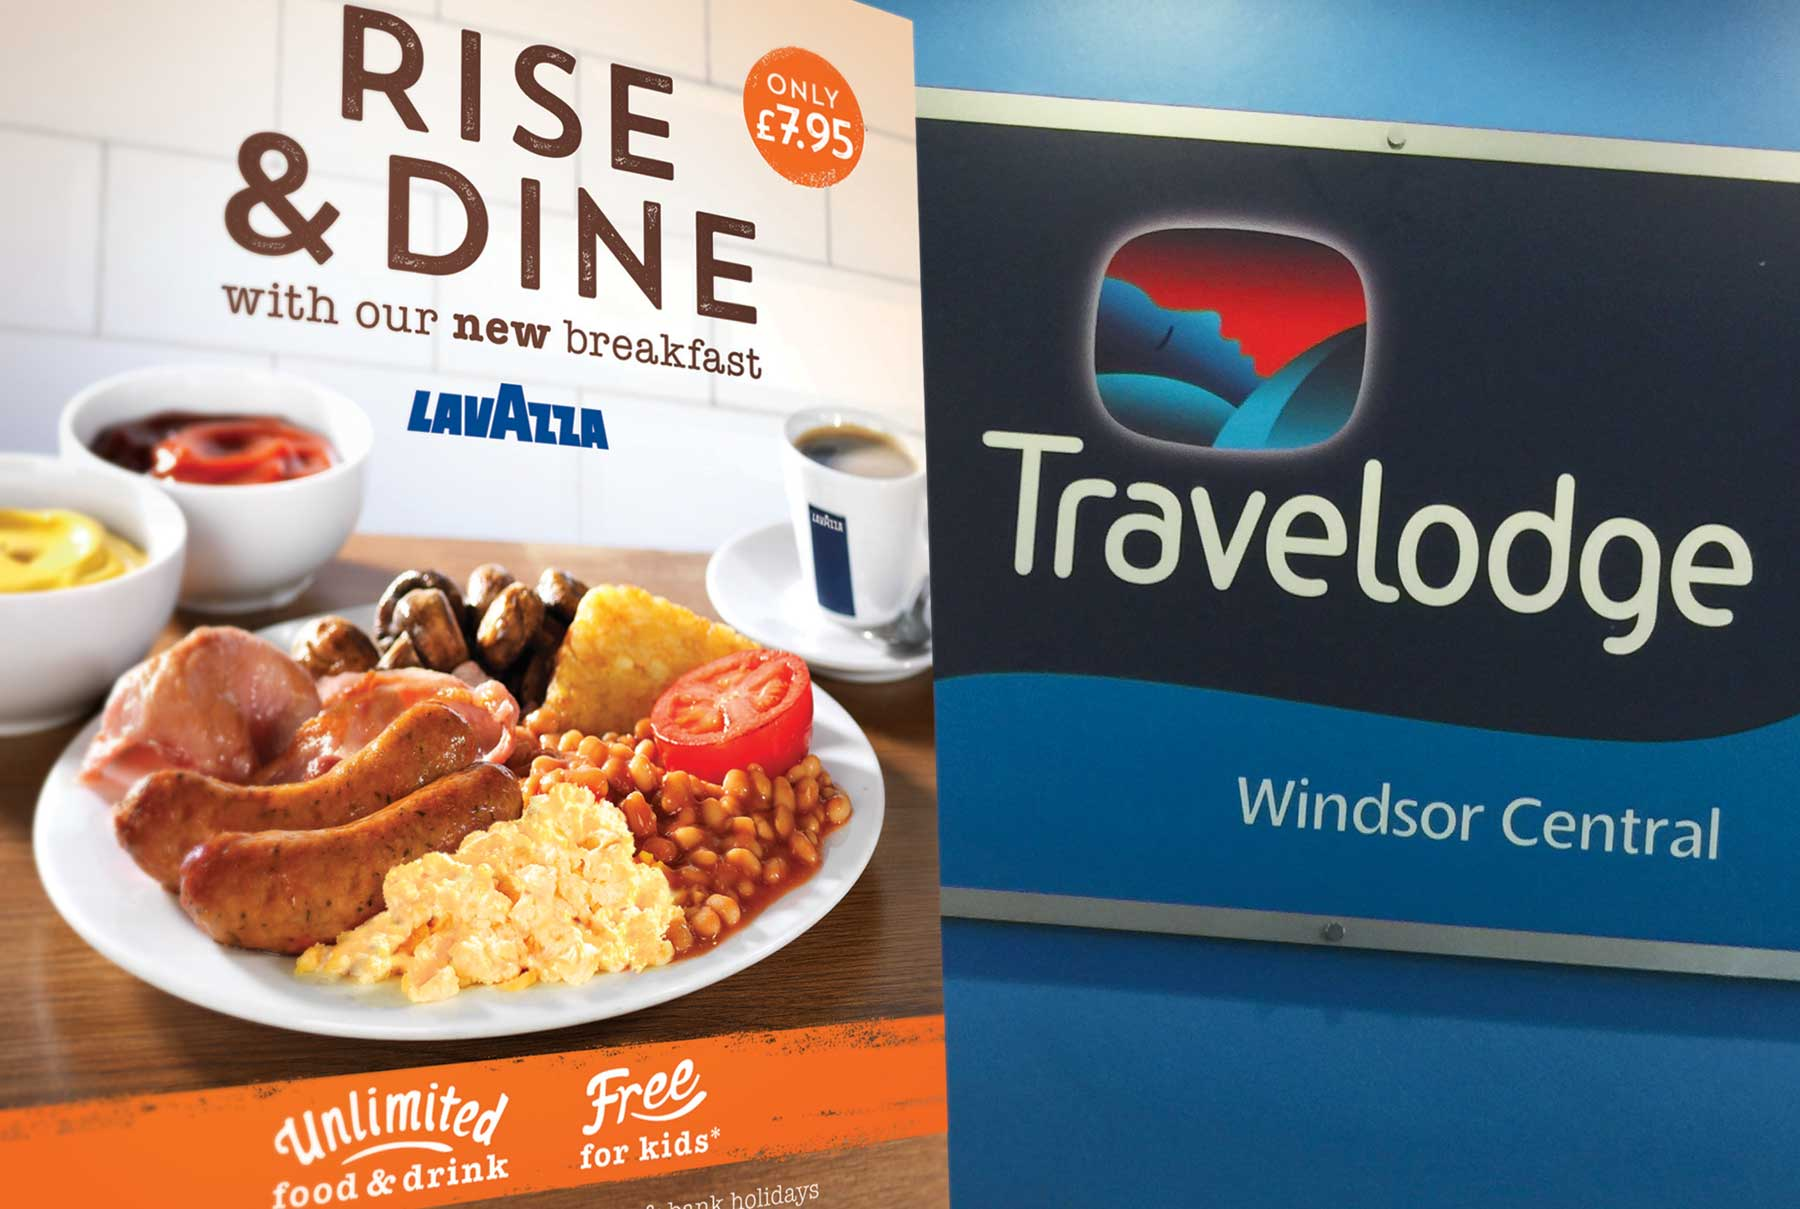 Travelodge Breakfast Campaign